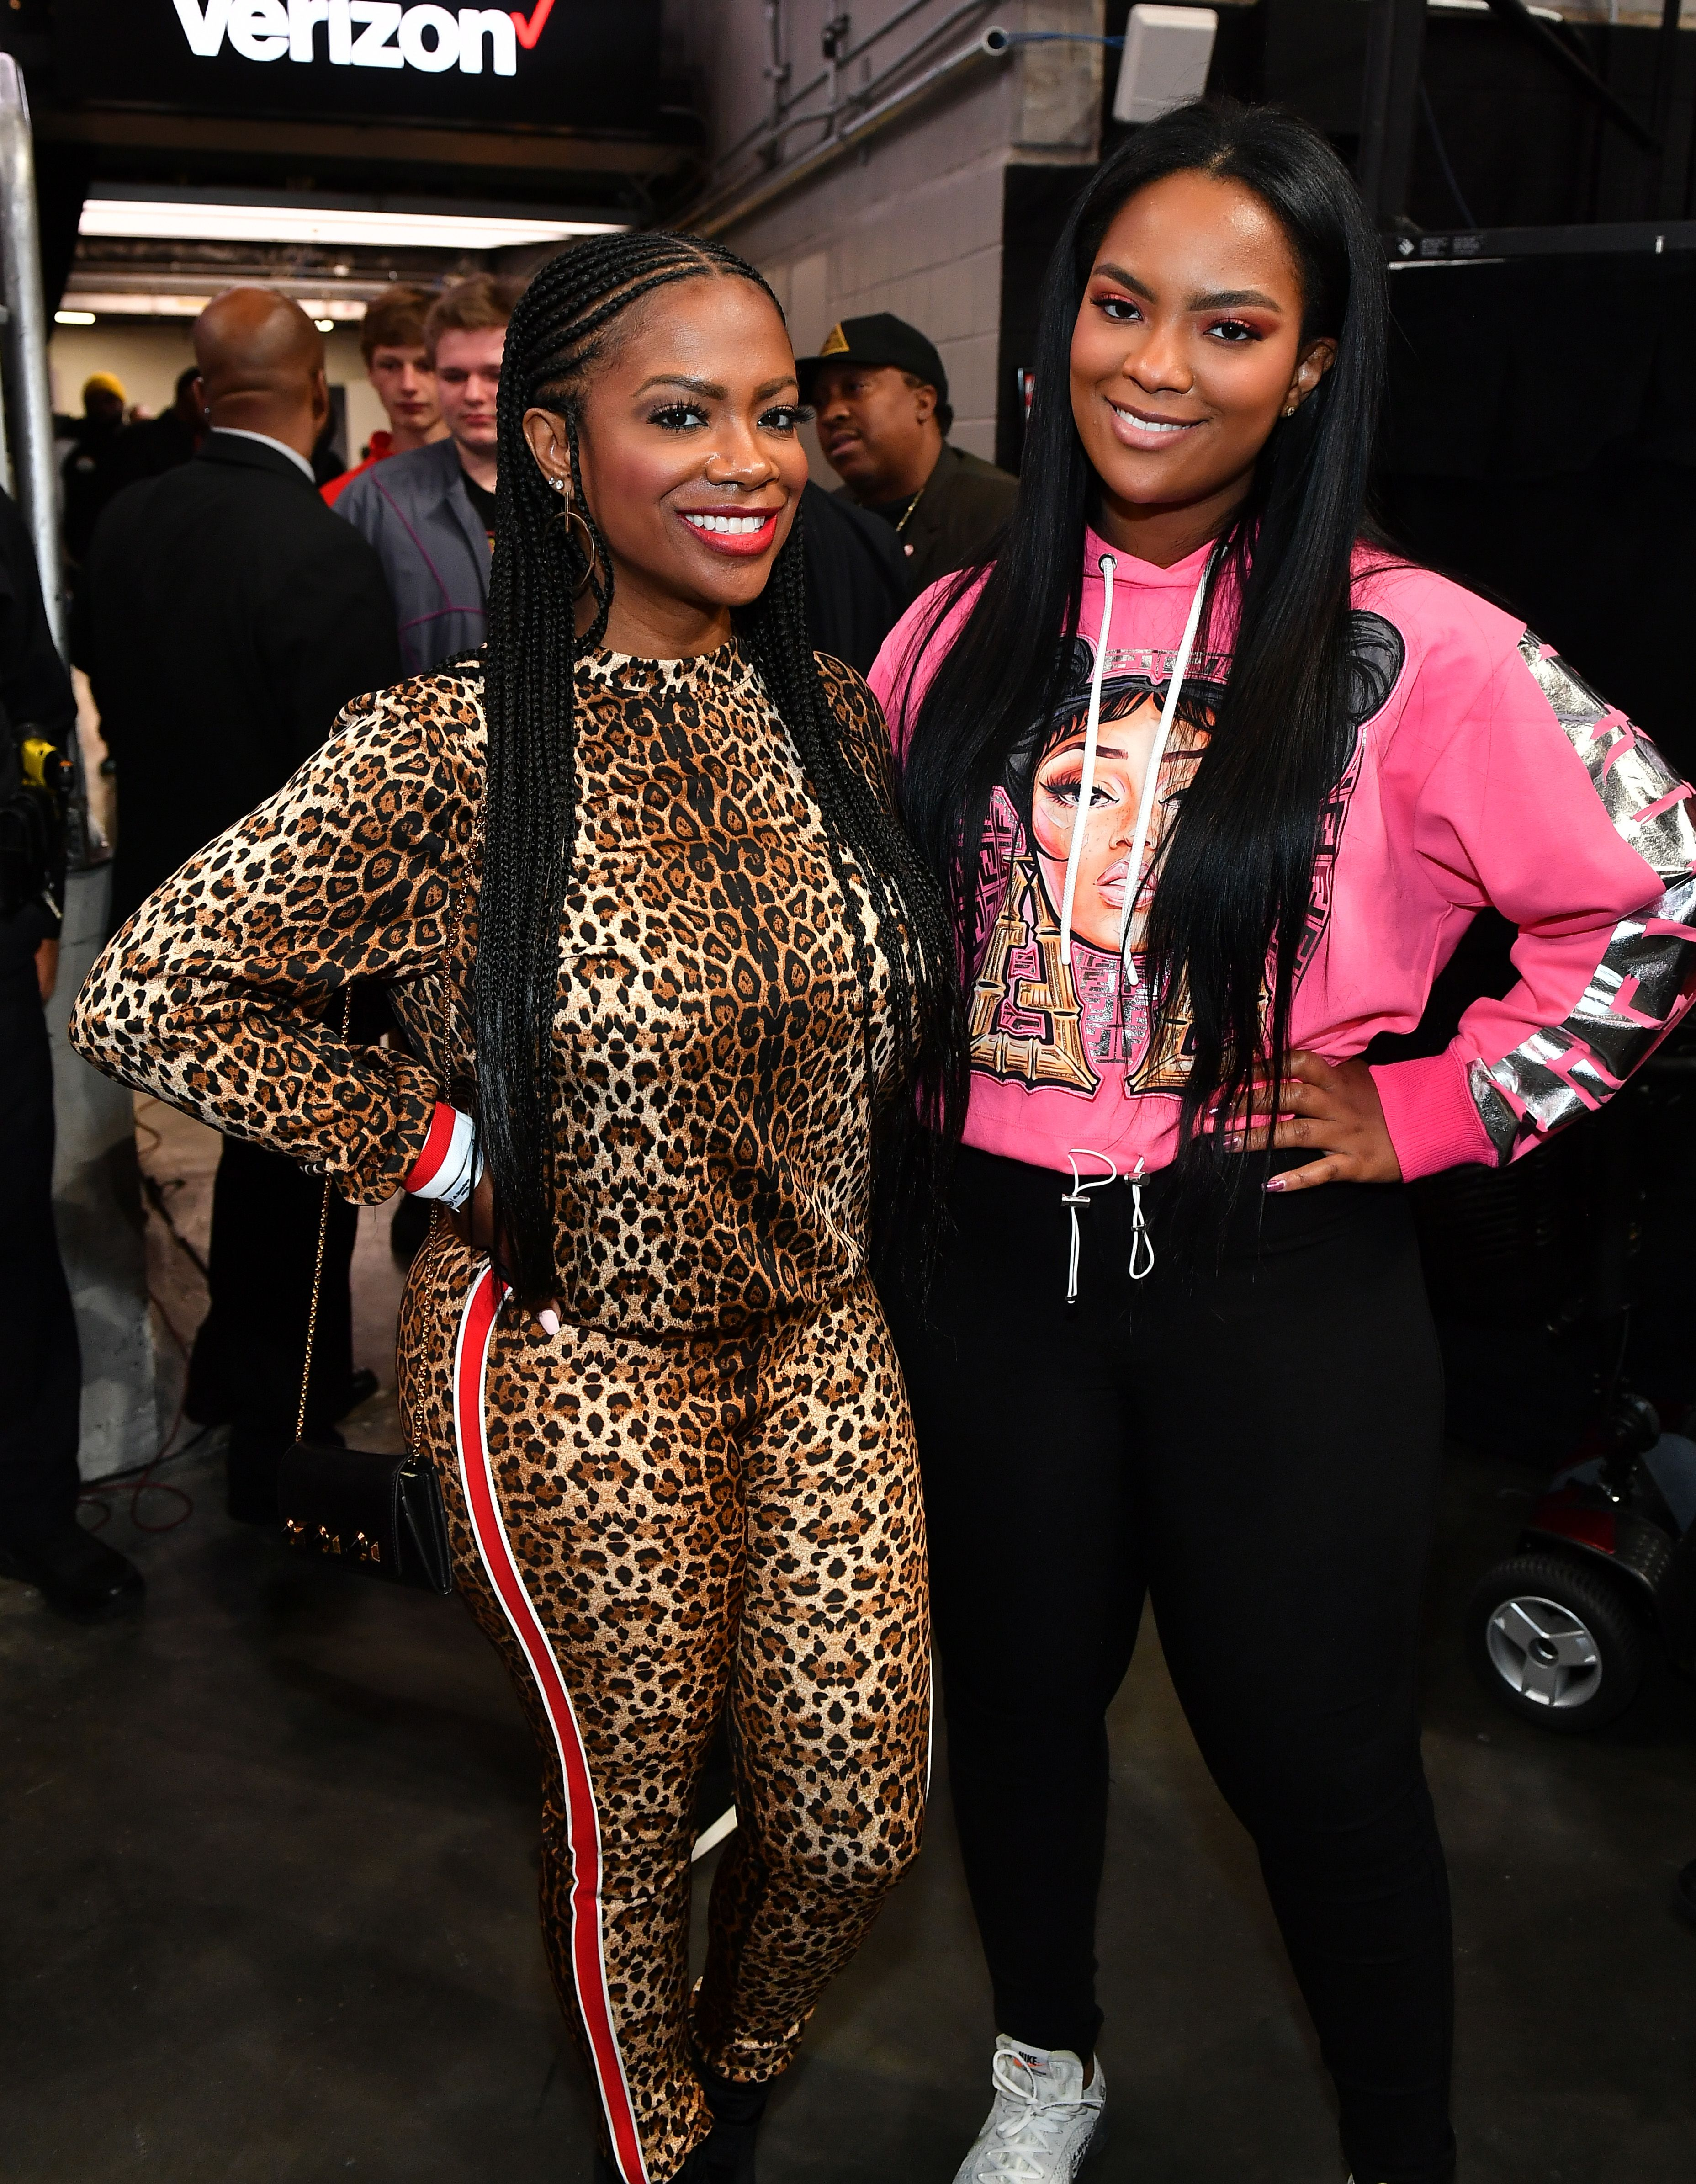 Kandi Burruss and Riley Burruss at a NBA game between the Lakers and the Atlanta Hawks on December 15, 2019 | Photo: Getty Images